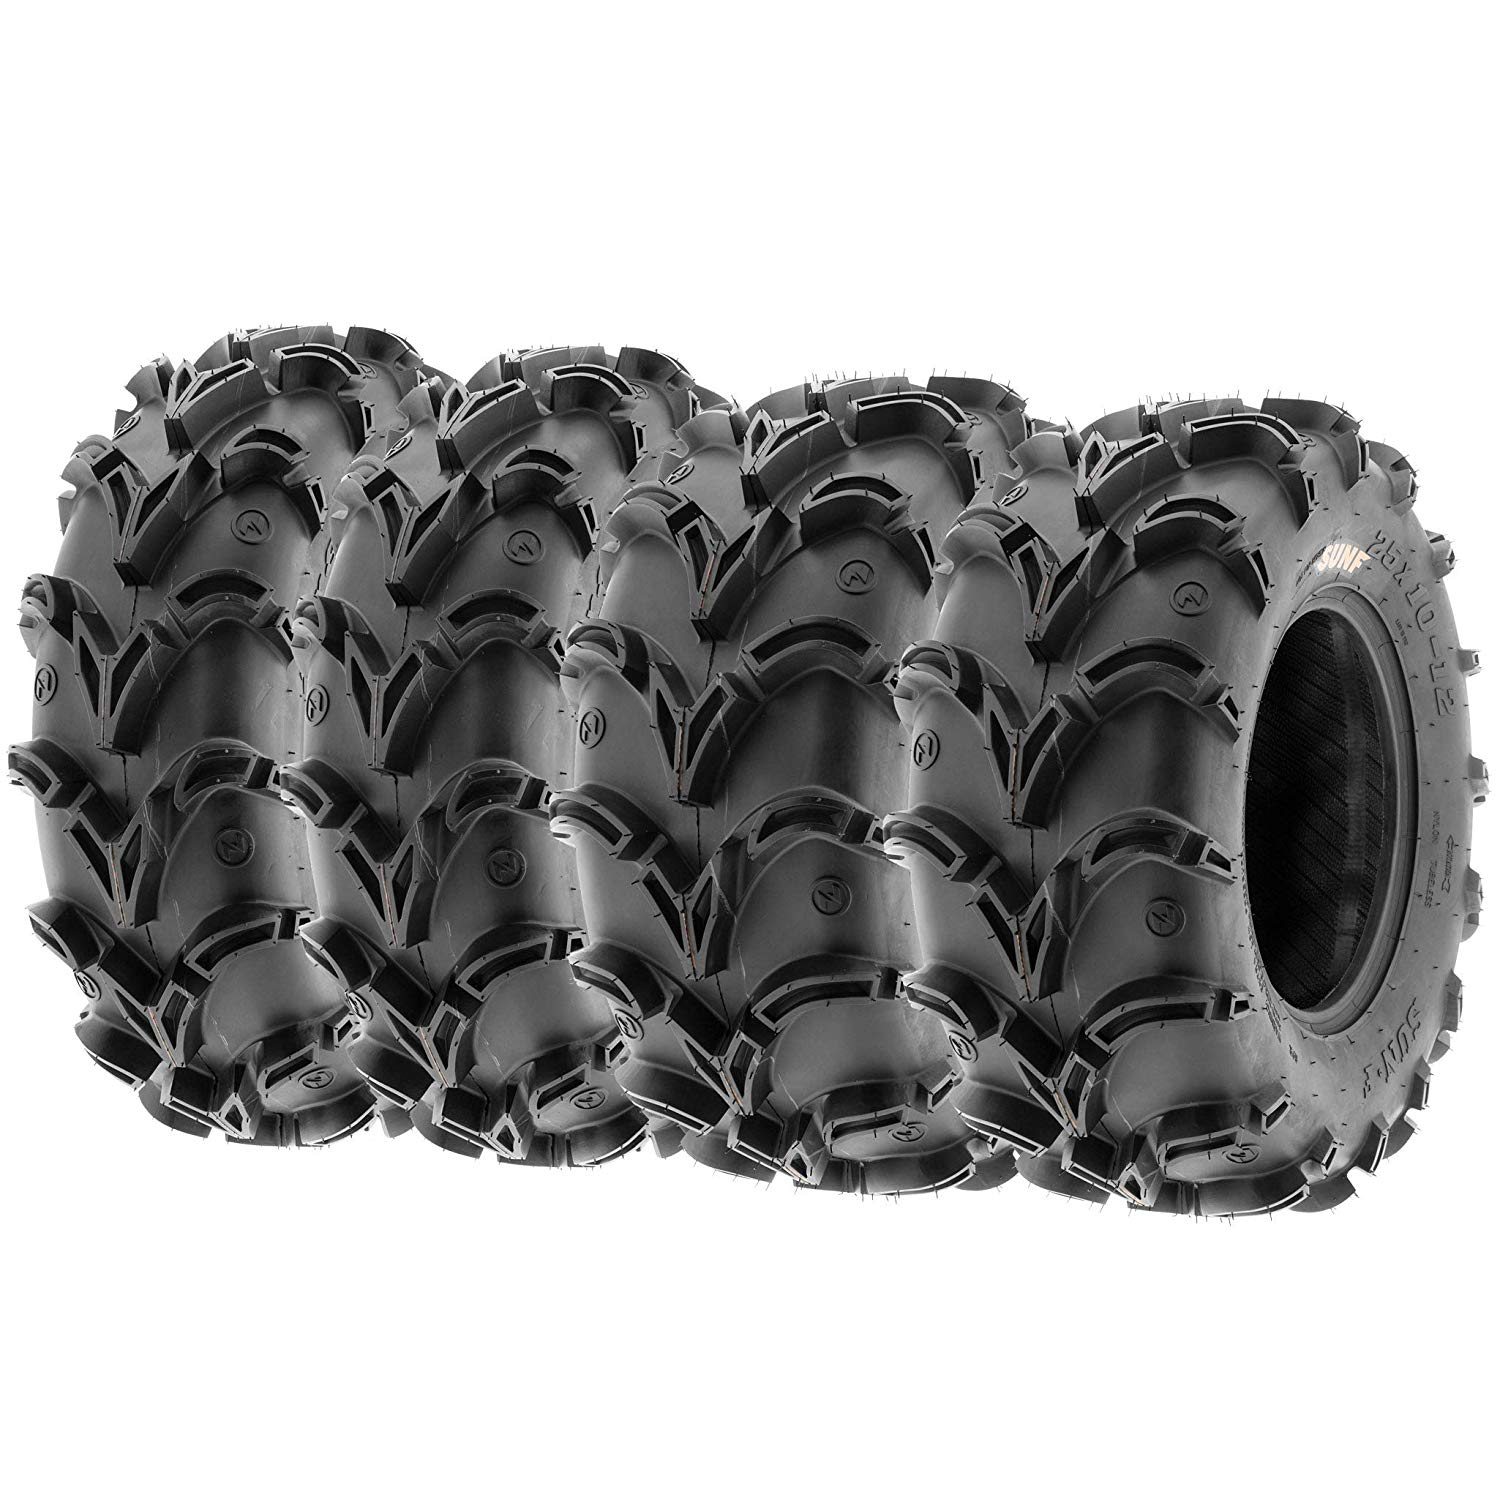 Set of 4 SunF A050 26x9-12 Front & 26x11-12 Rear Deep Mud + Trail ATV UTV Off-Road Tires, 6PR, Tubeless